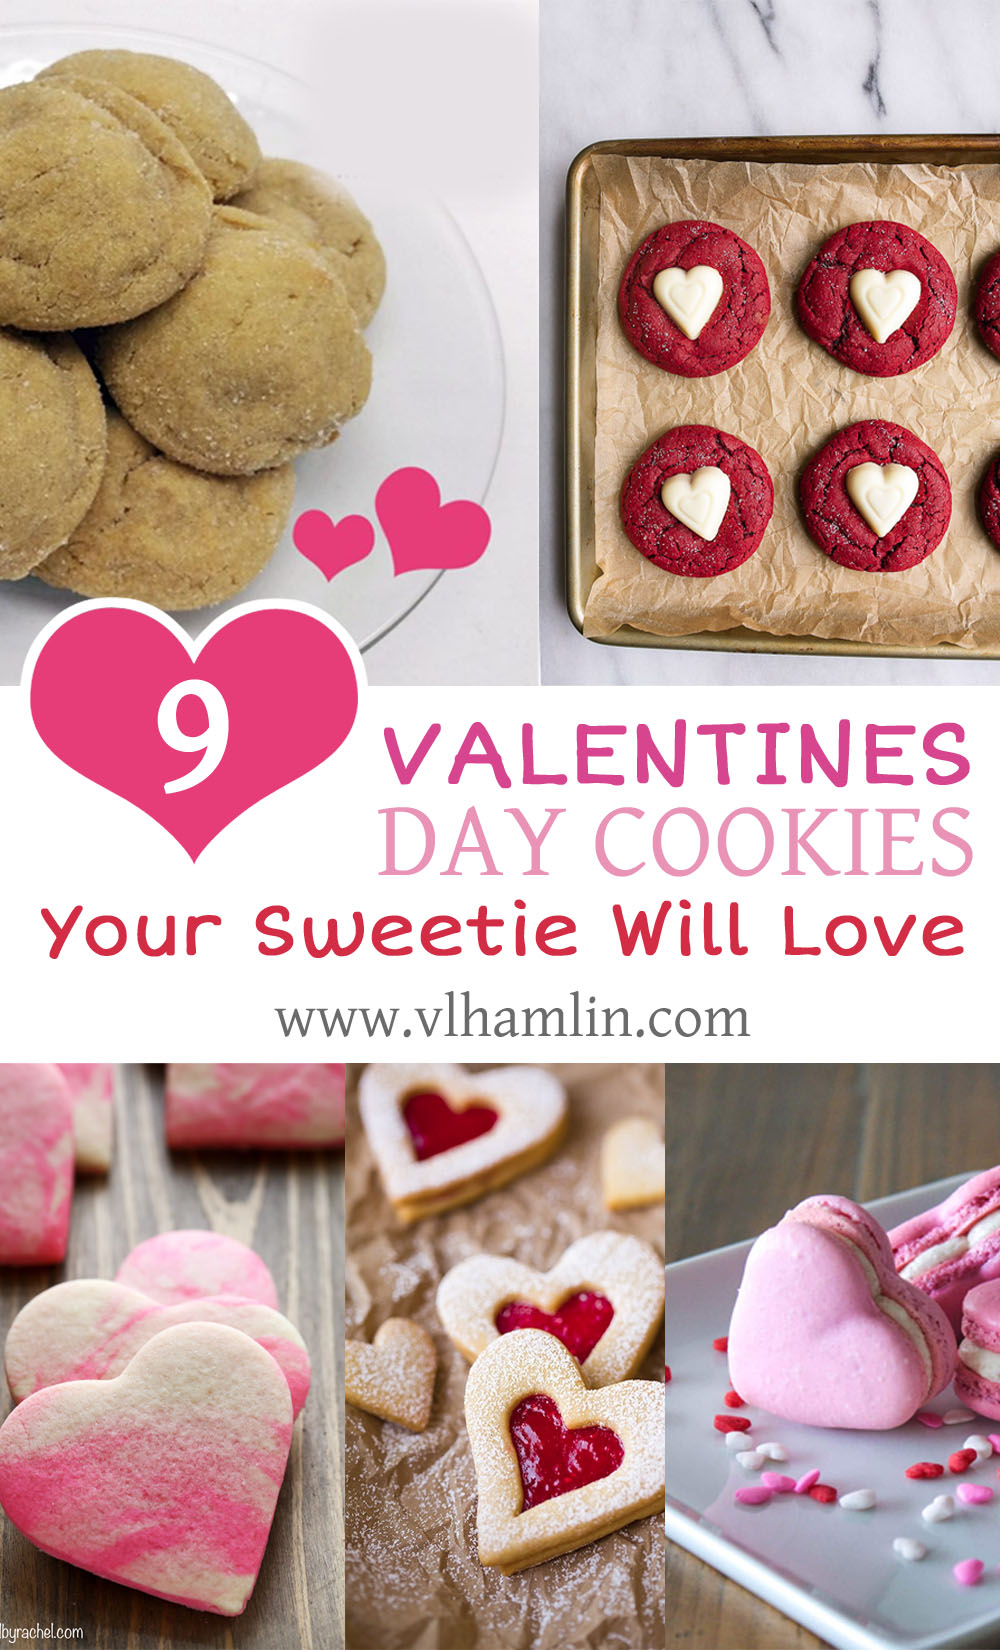 9 Valentines Day Cookies Your Sweetie Will Love